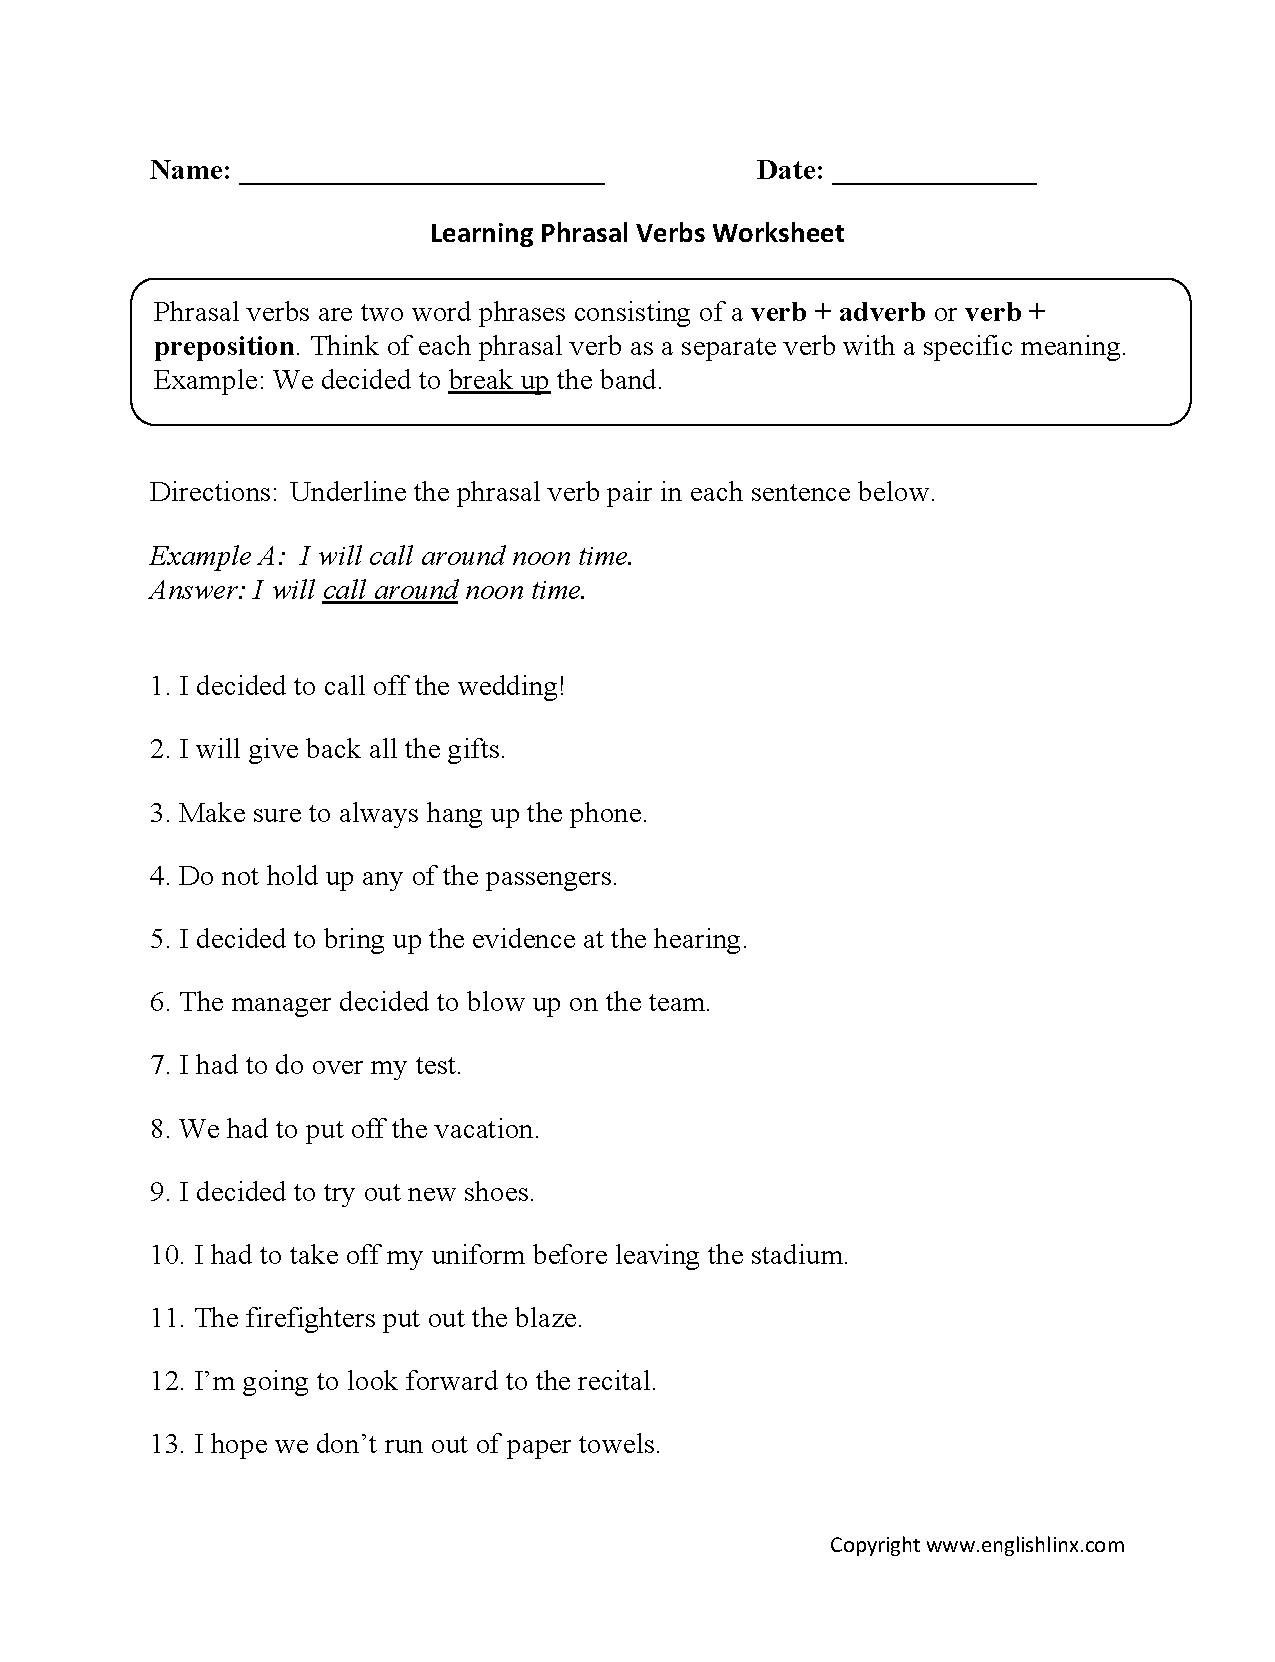 Worksheets Grammar Worksheets For High School phrasal verbs worksheets 7th grade english pinterest worksheets